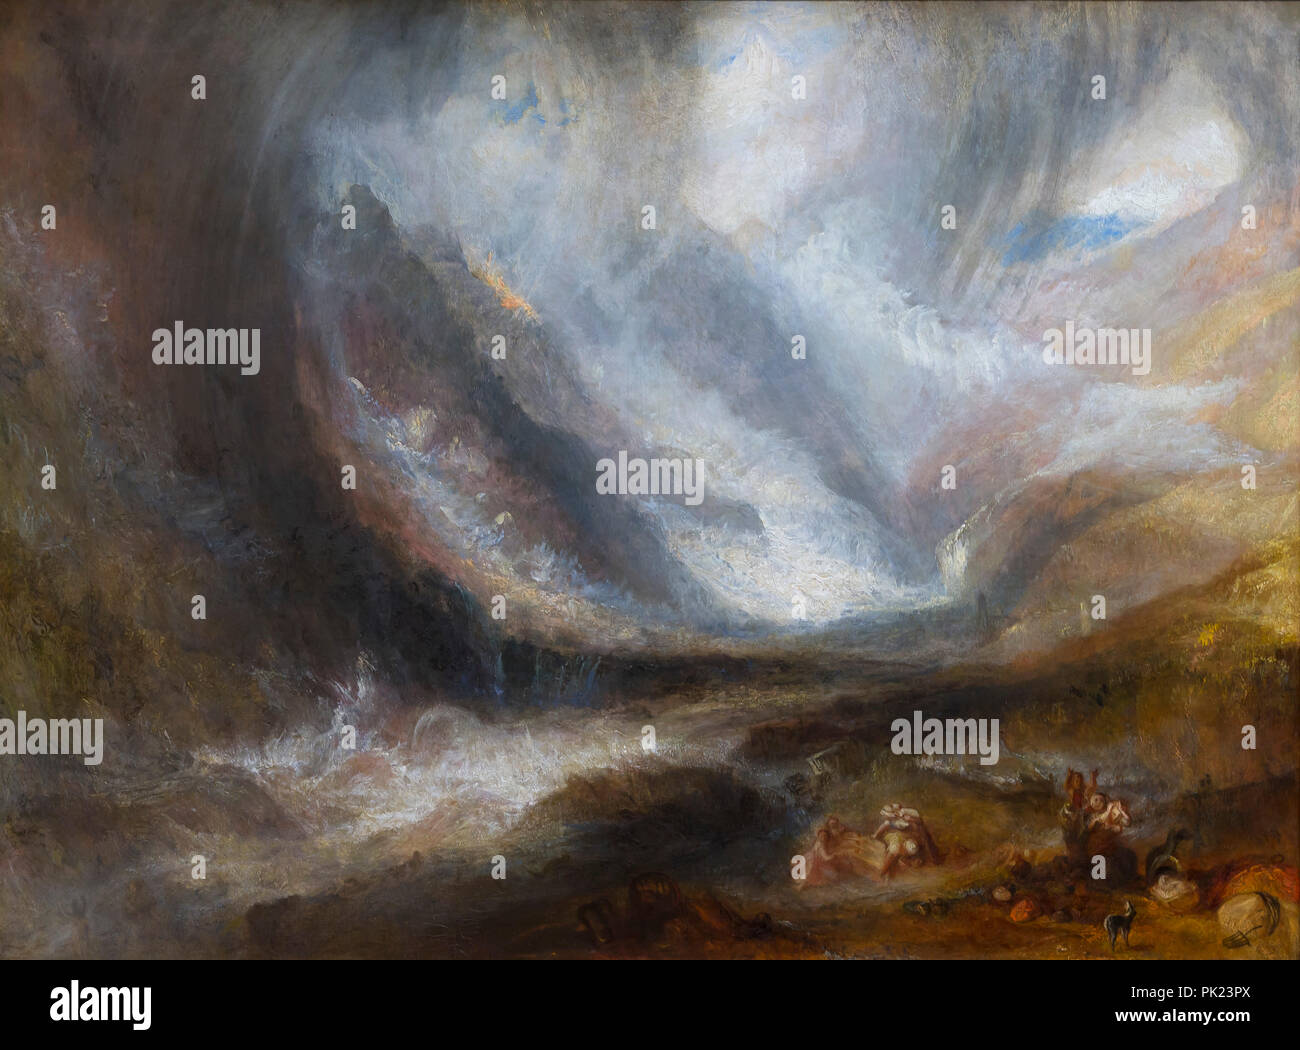 Valley of Aosta, Snowstorm Avalanche and Thunderstorm, JMW Turner, 1836-1837, Art Institute of Chicago, Chicago, Illinois, USA, North America, - Stock Image